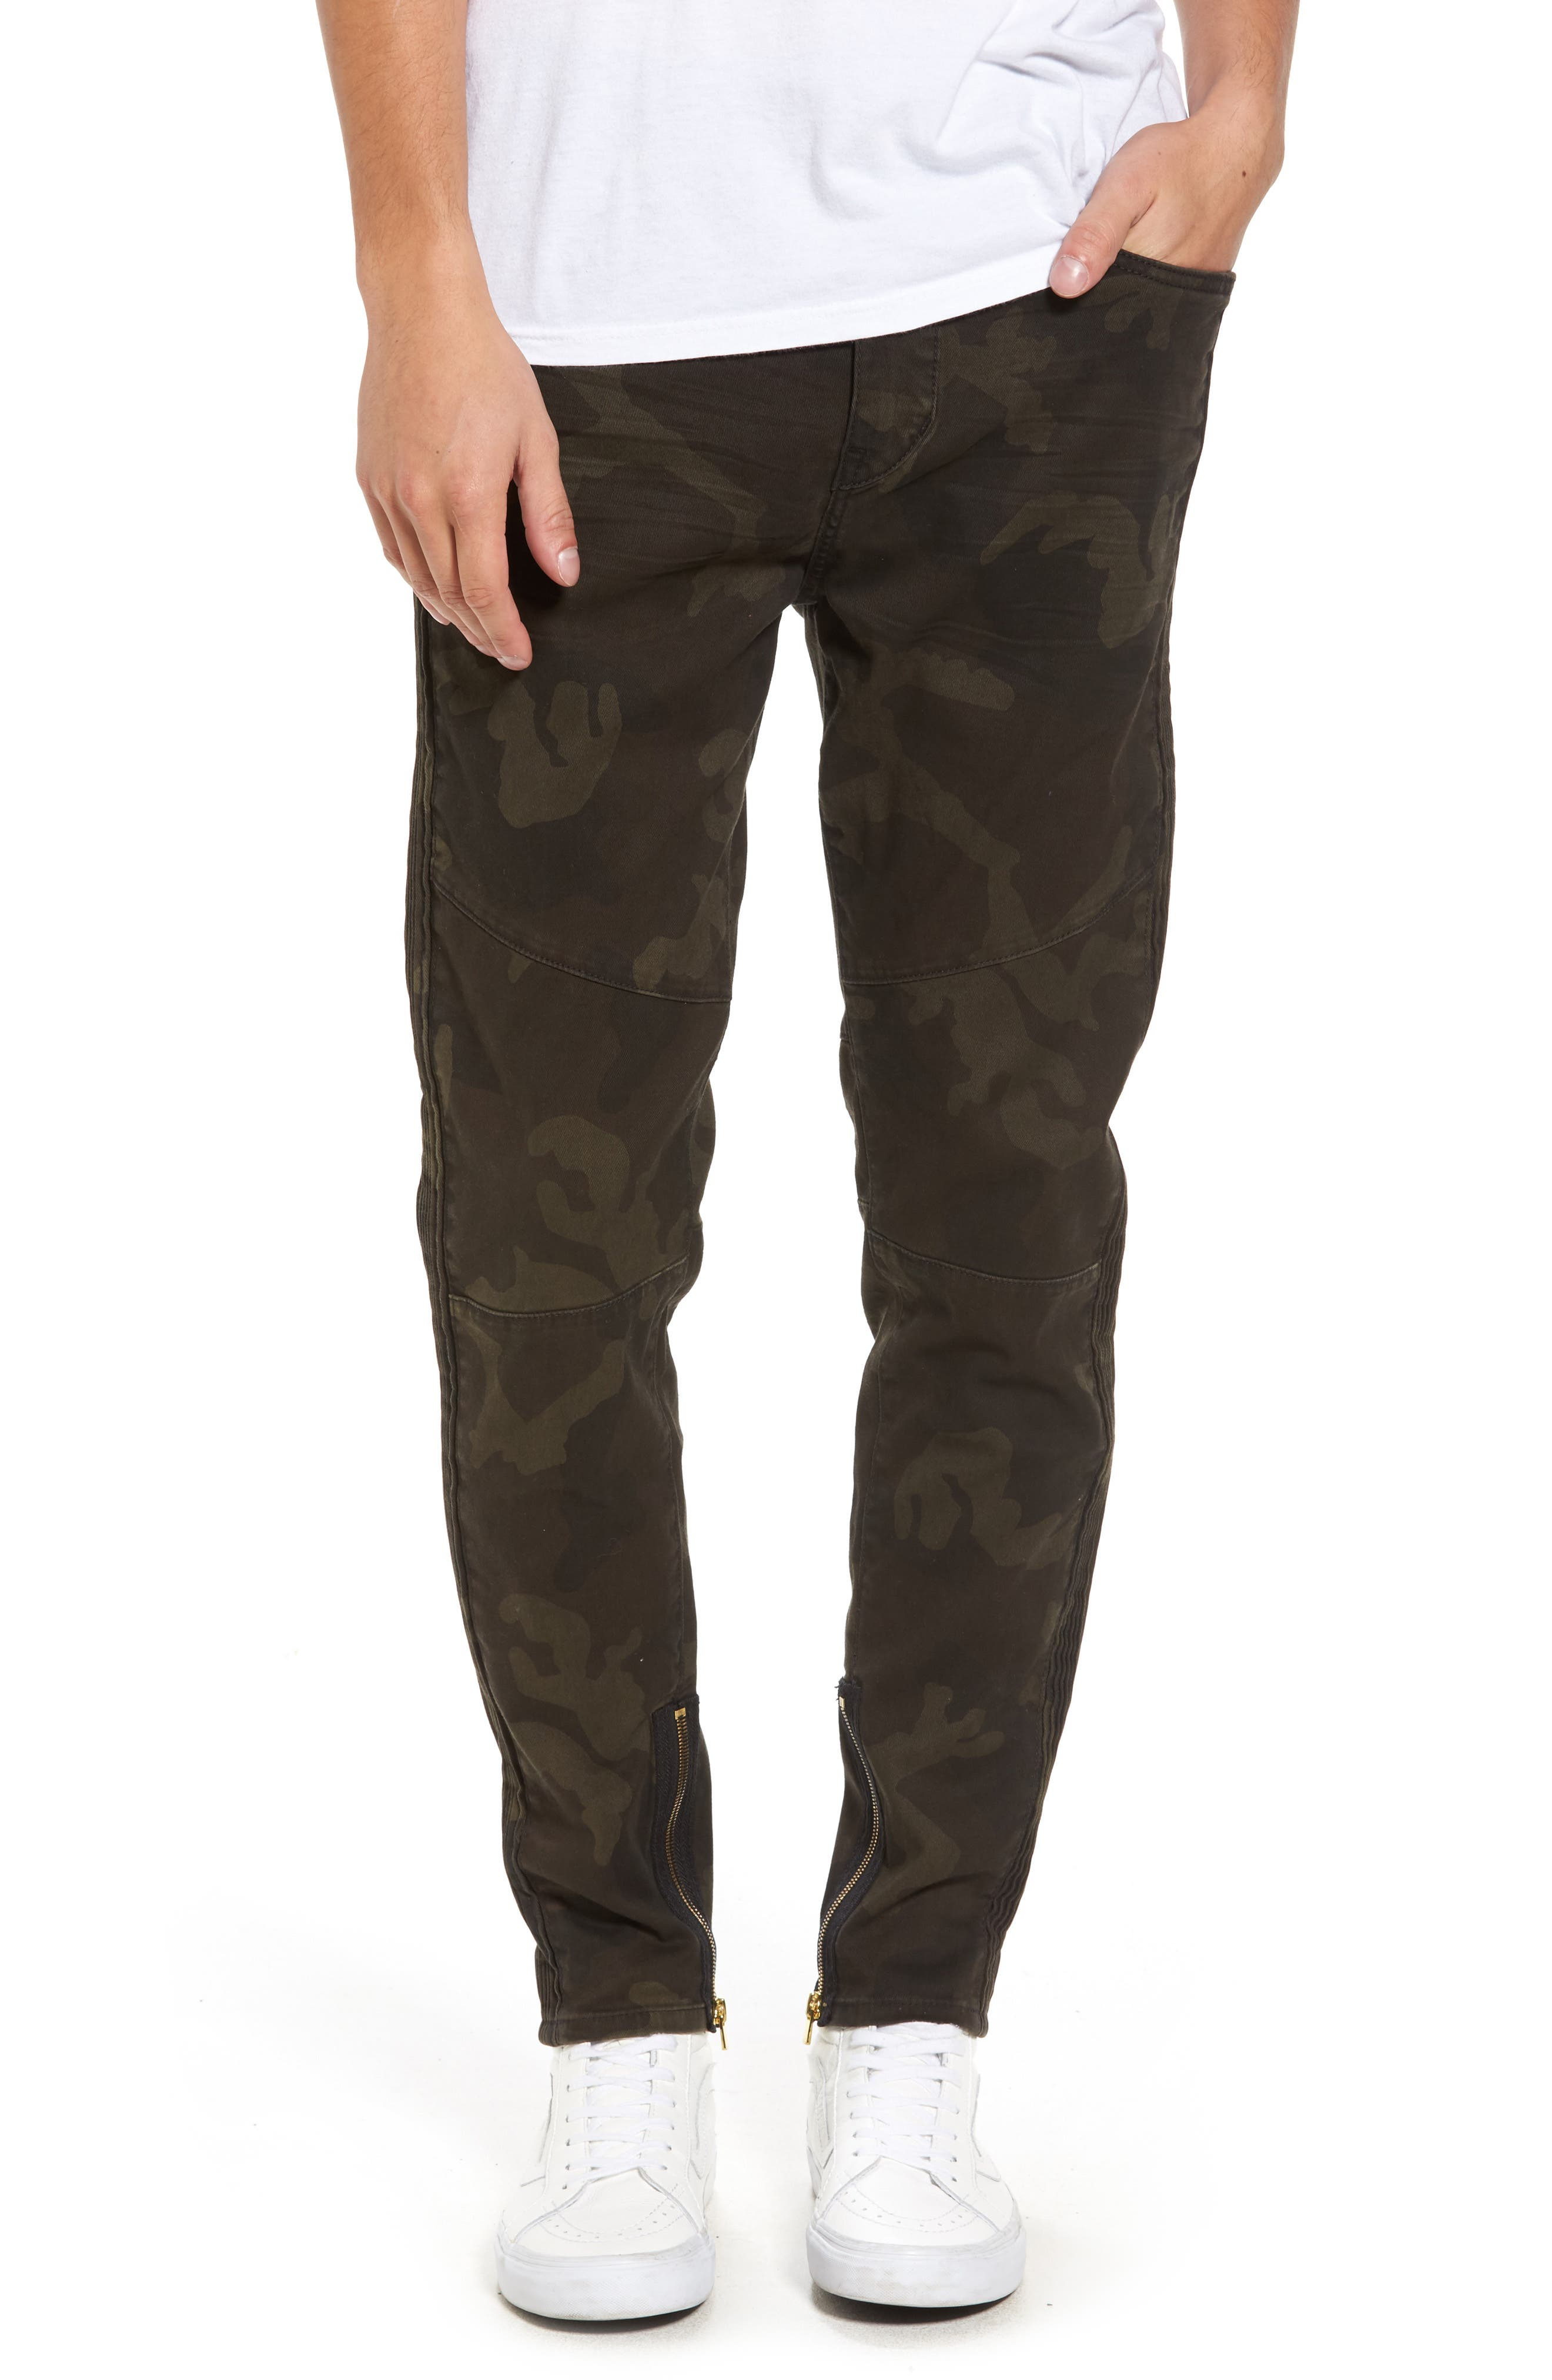 Racer Skinny Fit Jeans,                         Main,                         color, Rough Turf